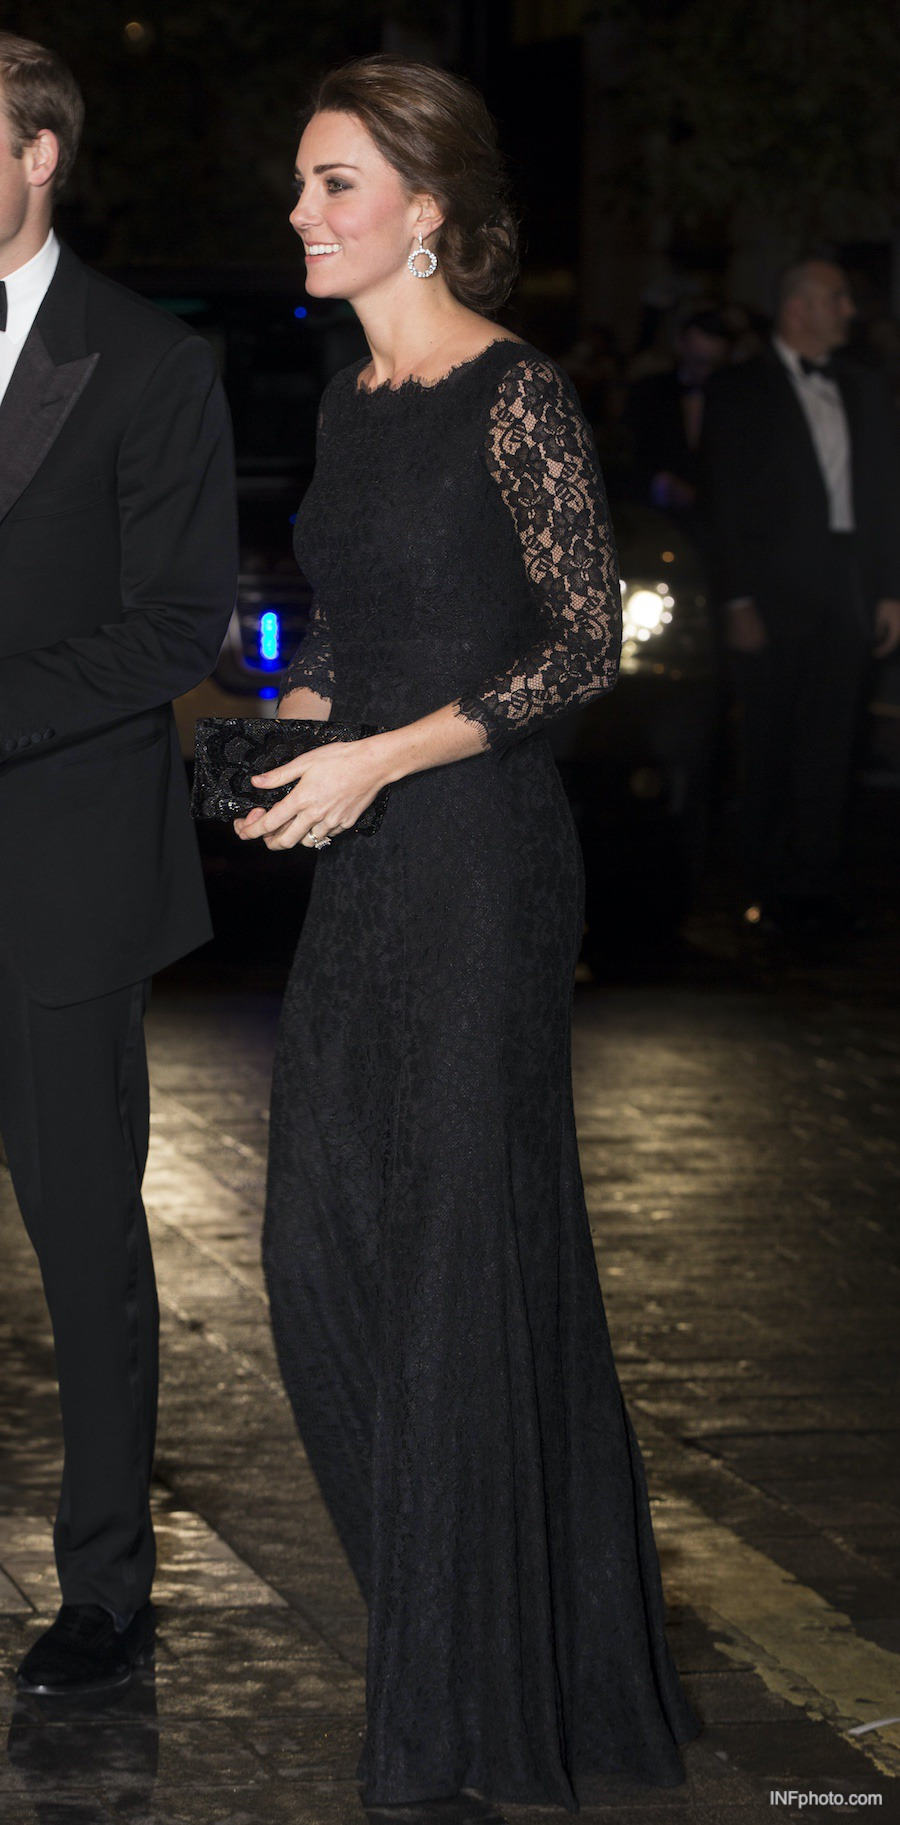 Kate Middleton at the Royal Variety show in 2014